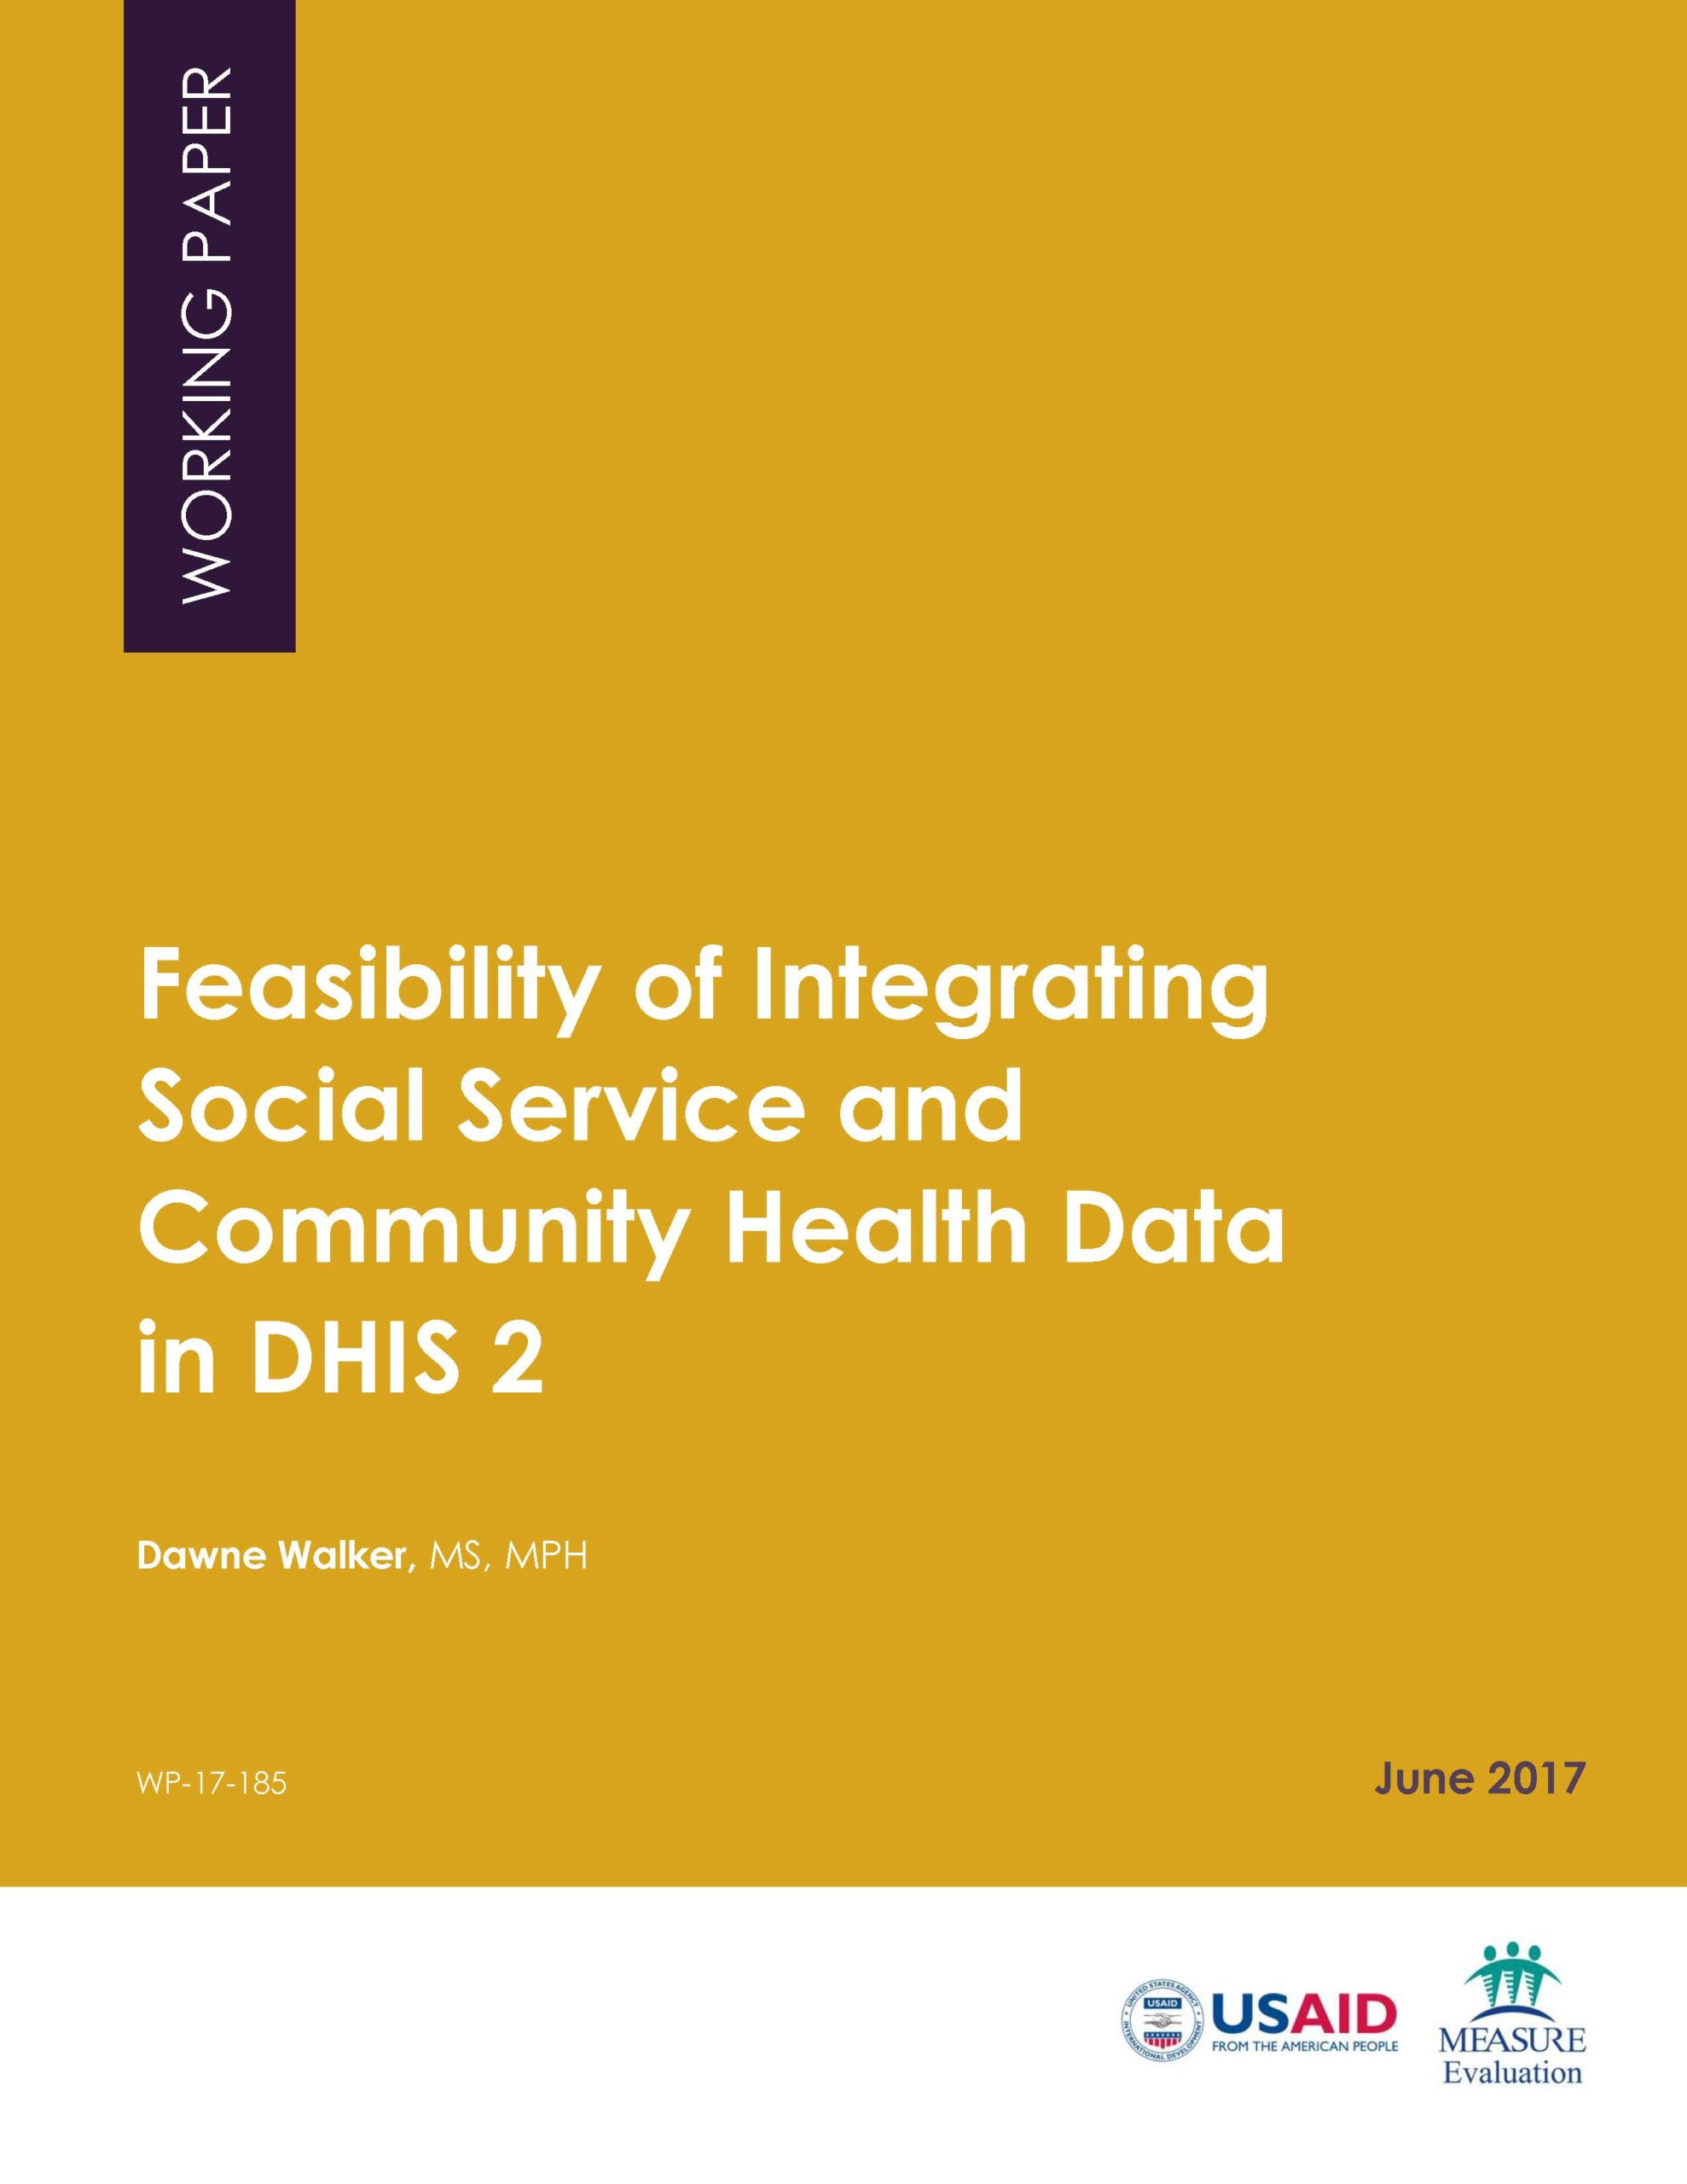 Feasibility of Integrating Social Service and Community Health Data in DHIS 2